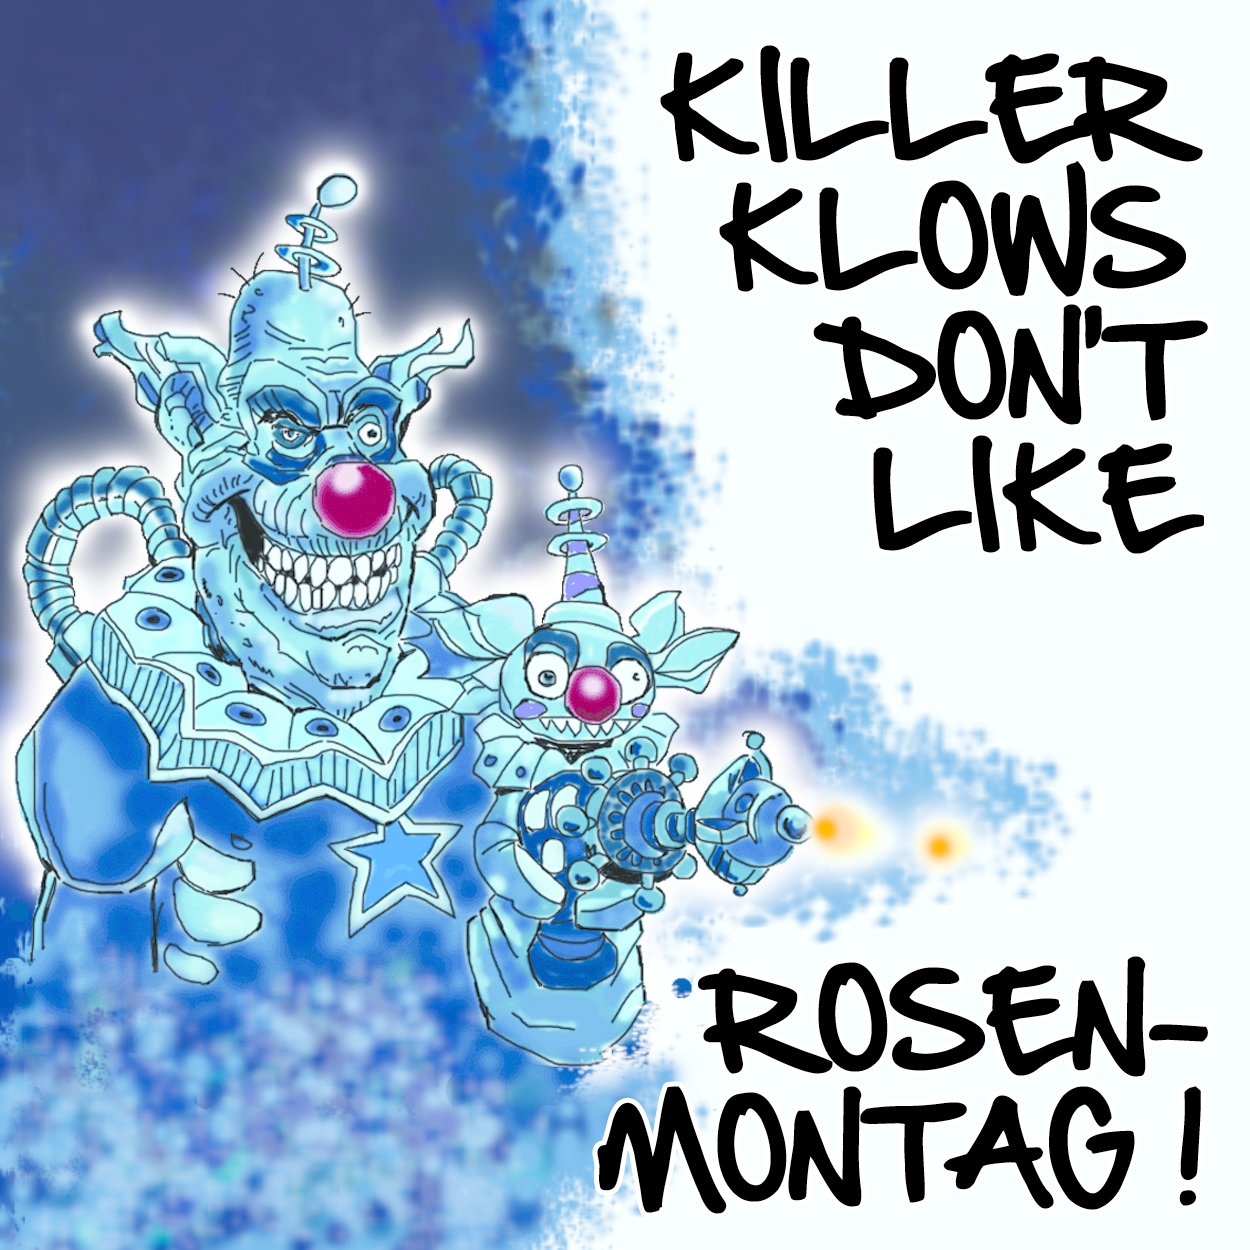 Killer Kowns don't like Rosenmontag!